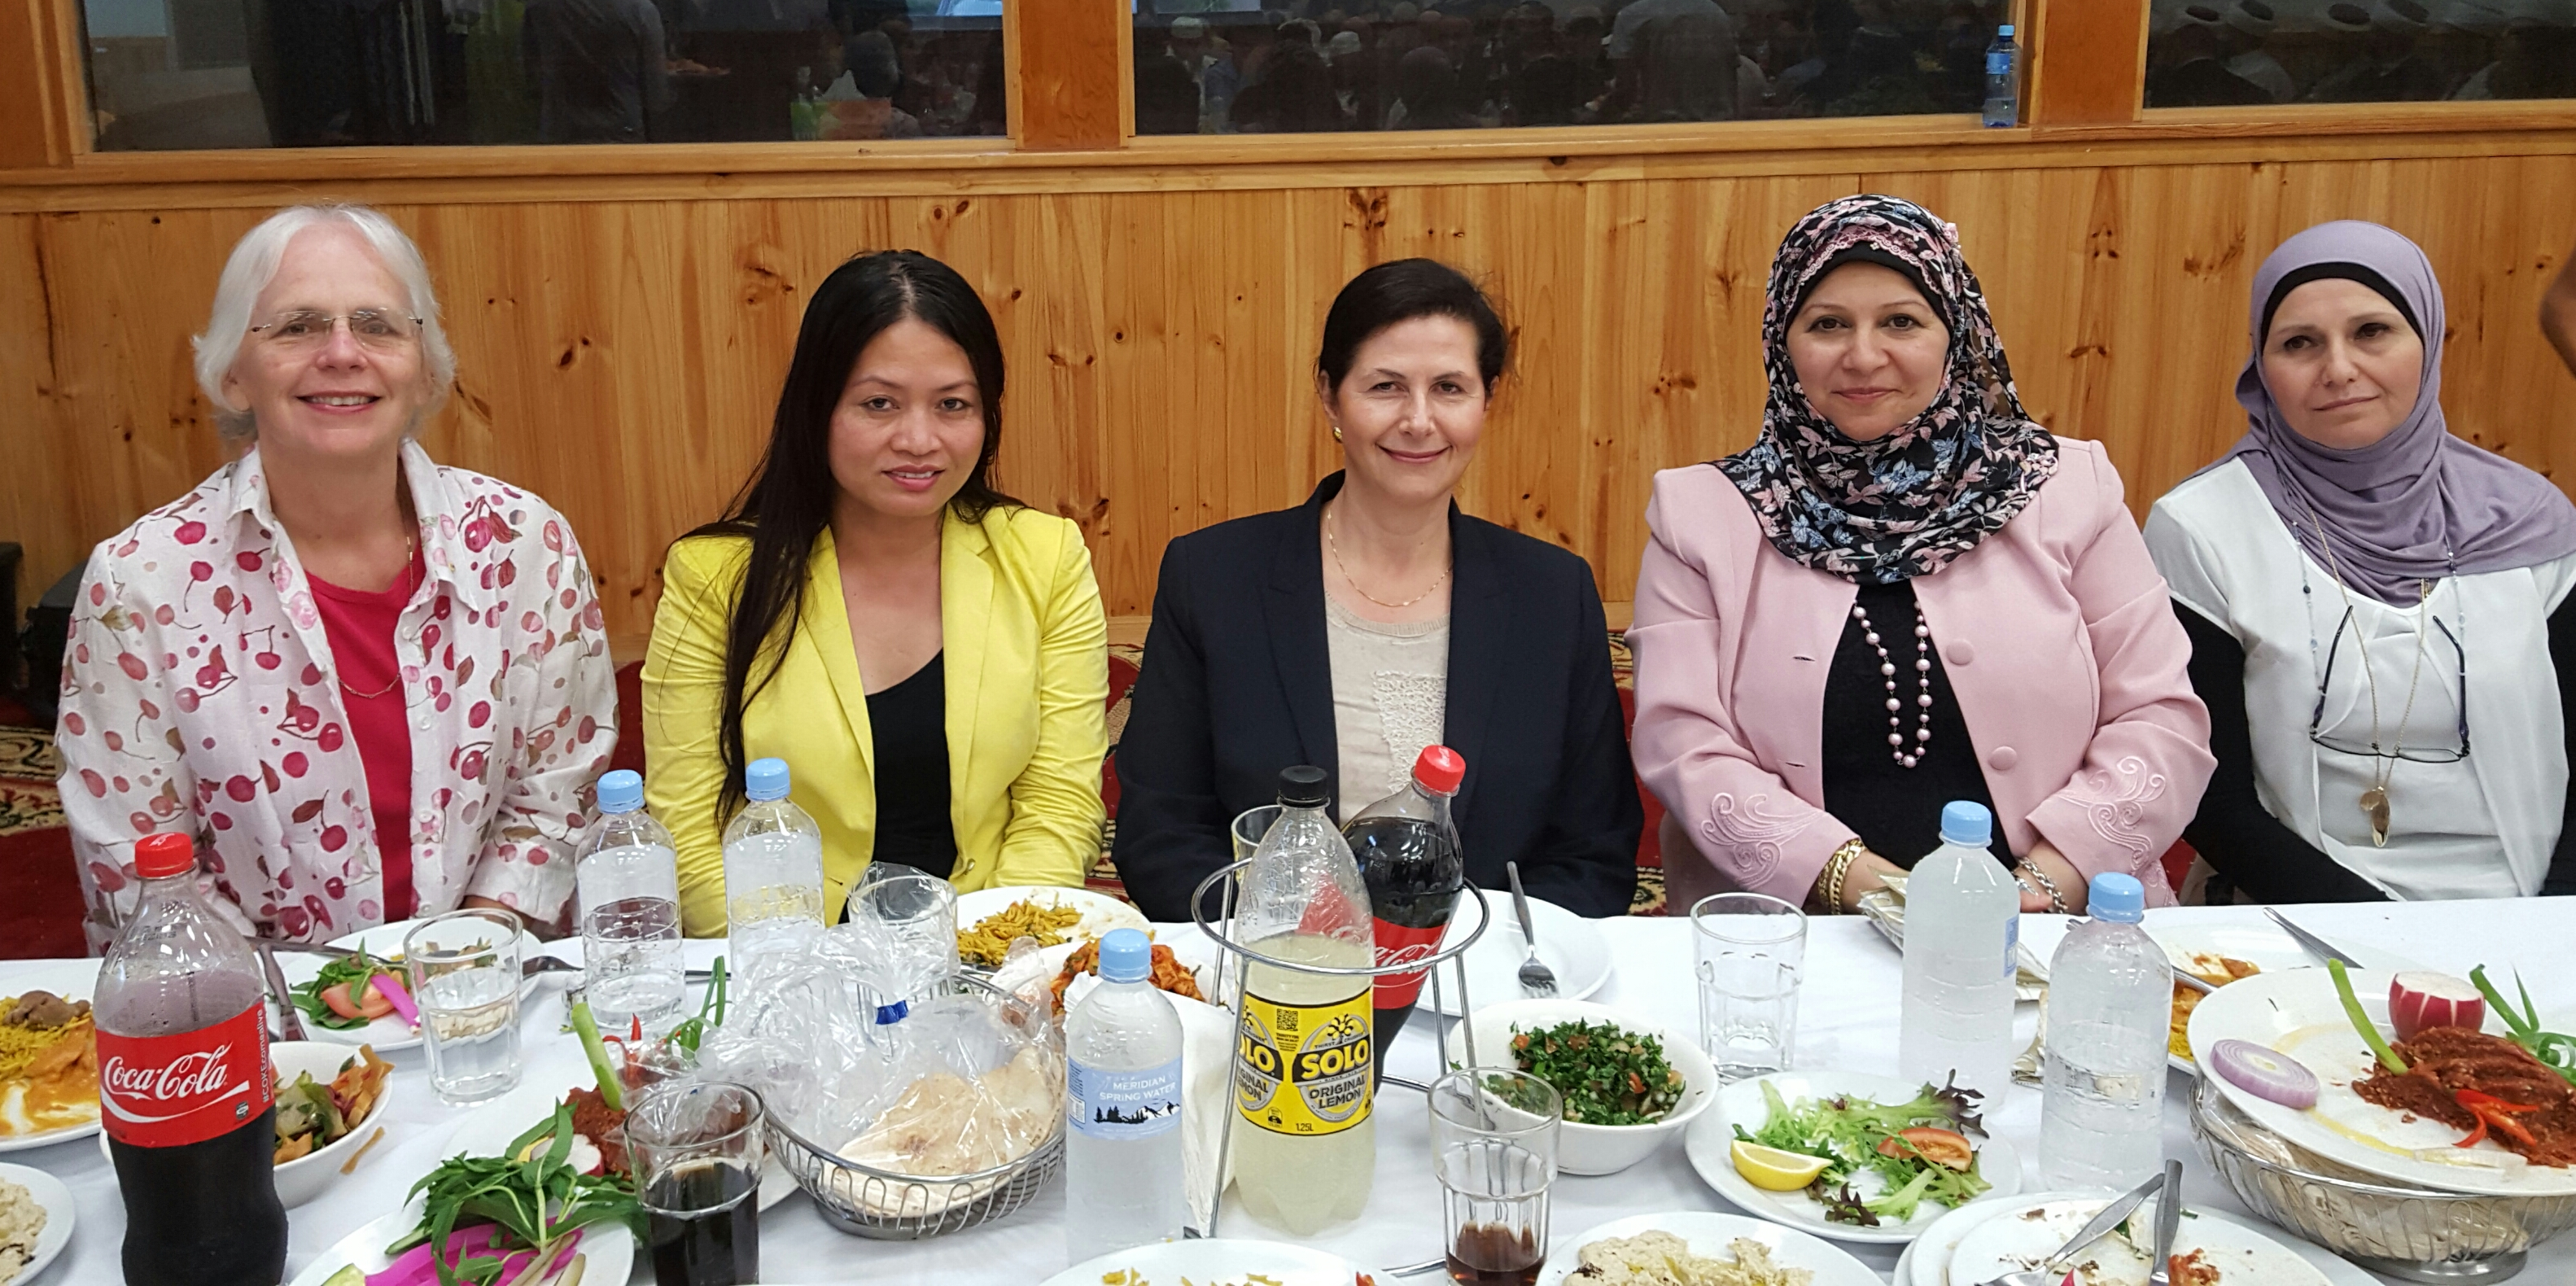 Senator Concetta Fierravent wells with members of MWWA and Thida Yang from Multicultural NSW